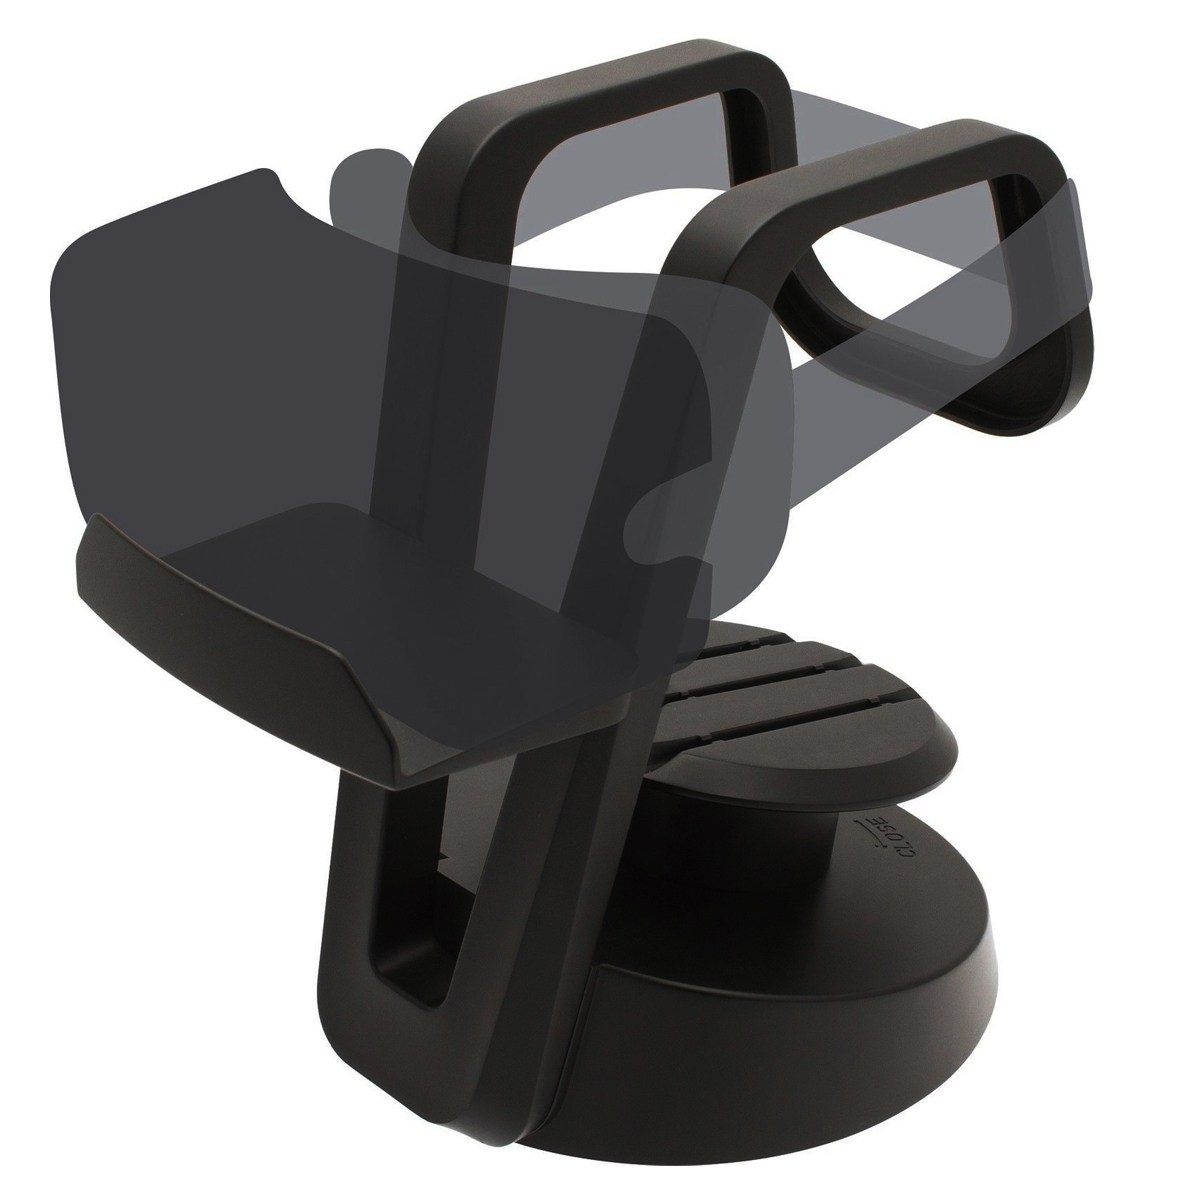 Claite Universal VR Headset Stand VR Glasses Monut Black Plastic ABS Display Holder Cable Organiser Rack Storage For VR Glasses